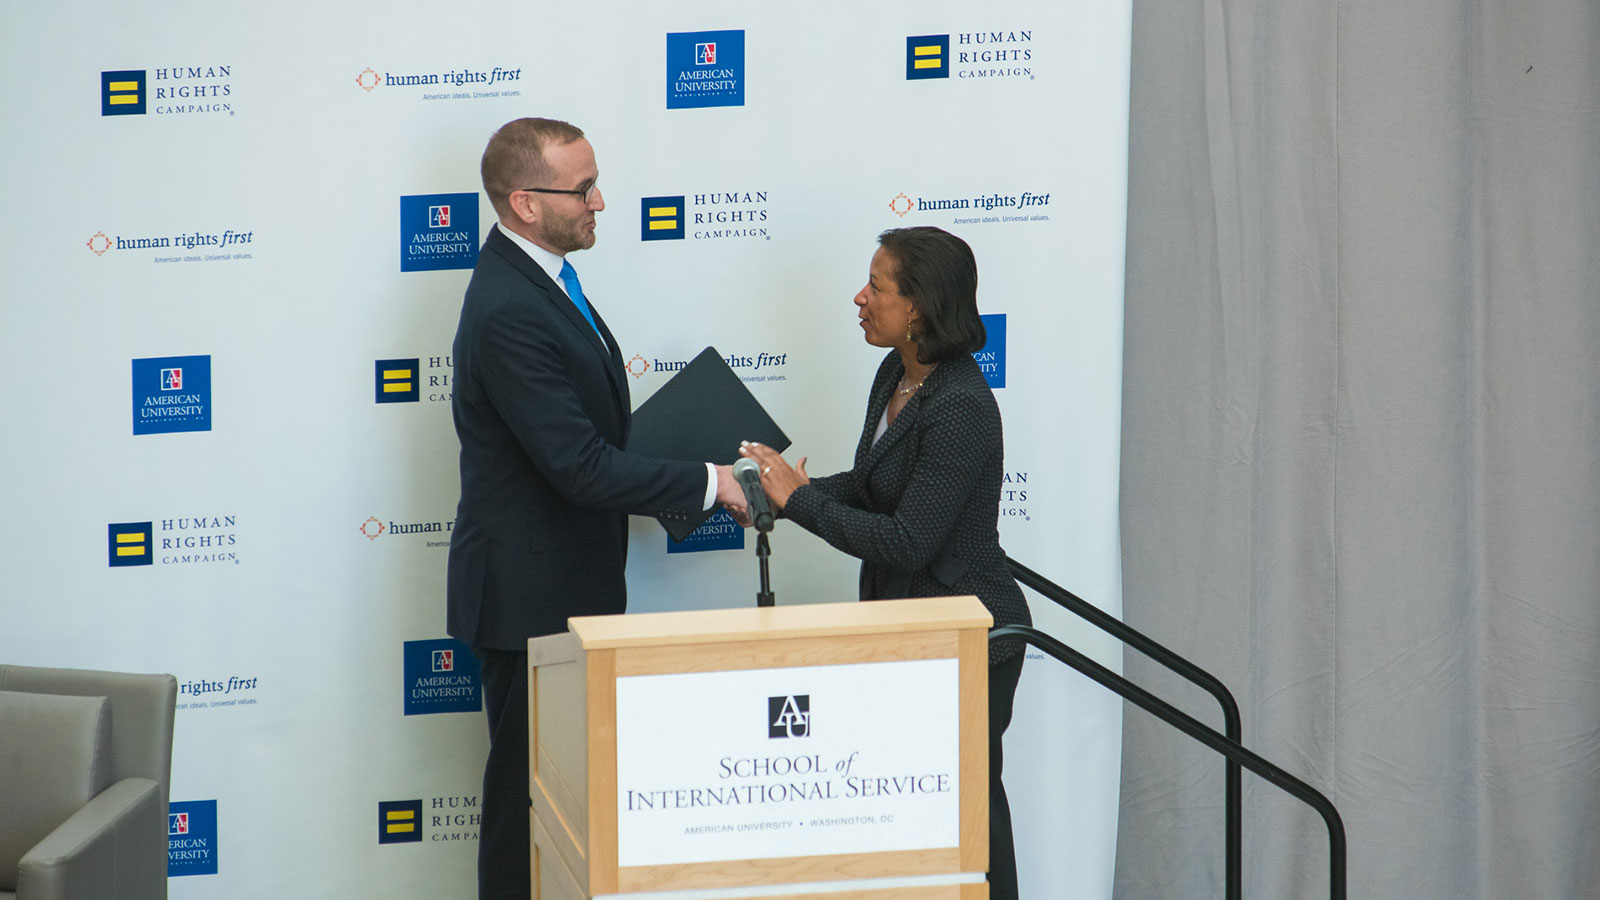 HRC President Chad Griffin Introduces Ambassador Susan Rice Ahead of  Historic Speech on LGBTQ Rights 969f716b0d8b4